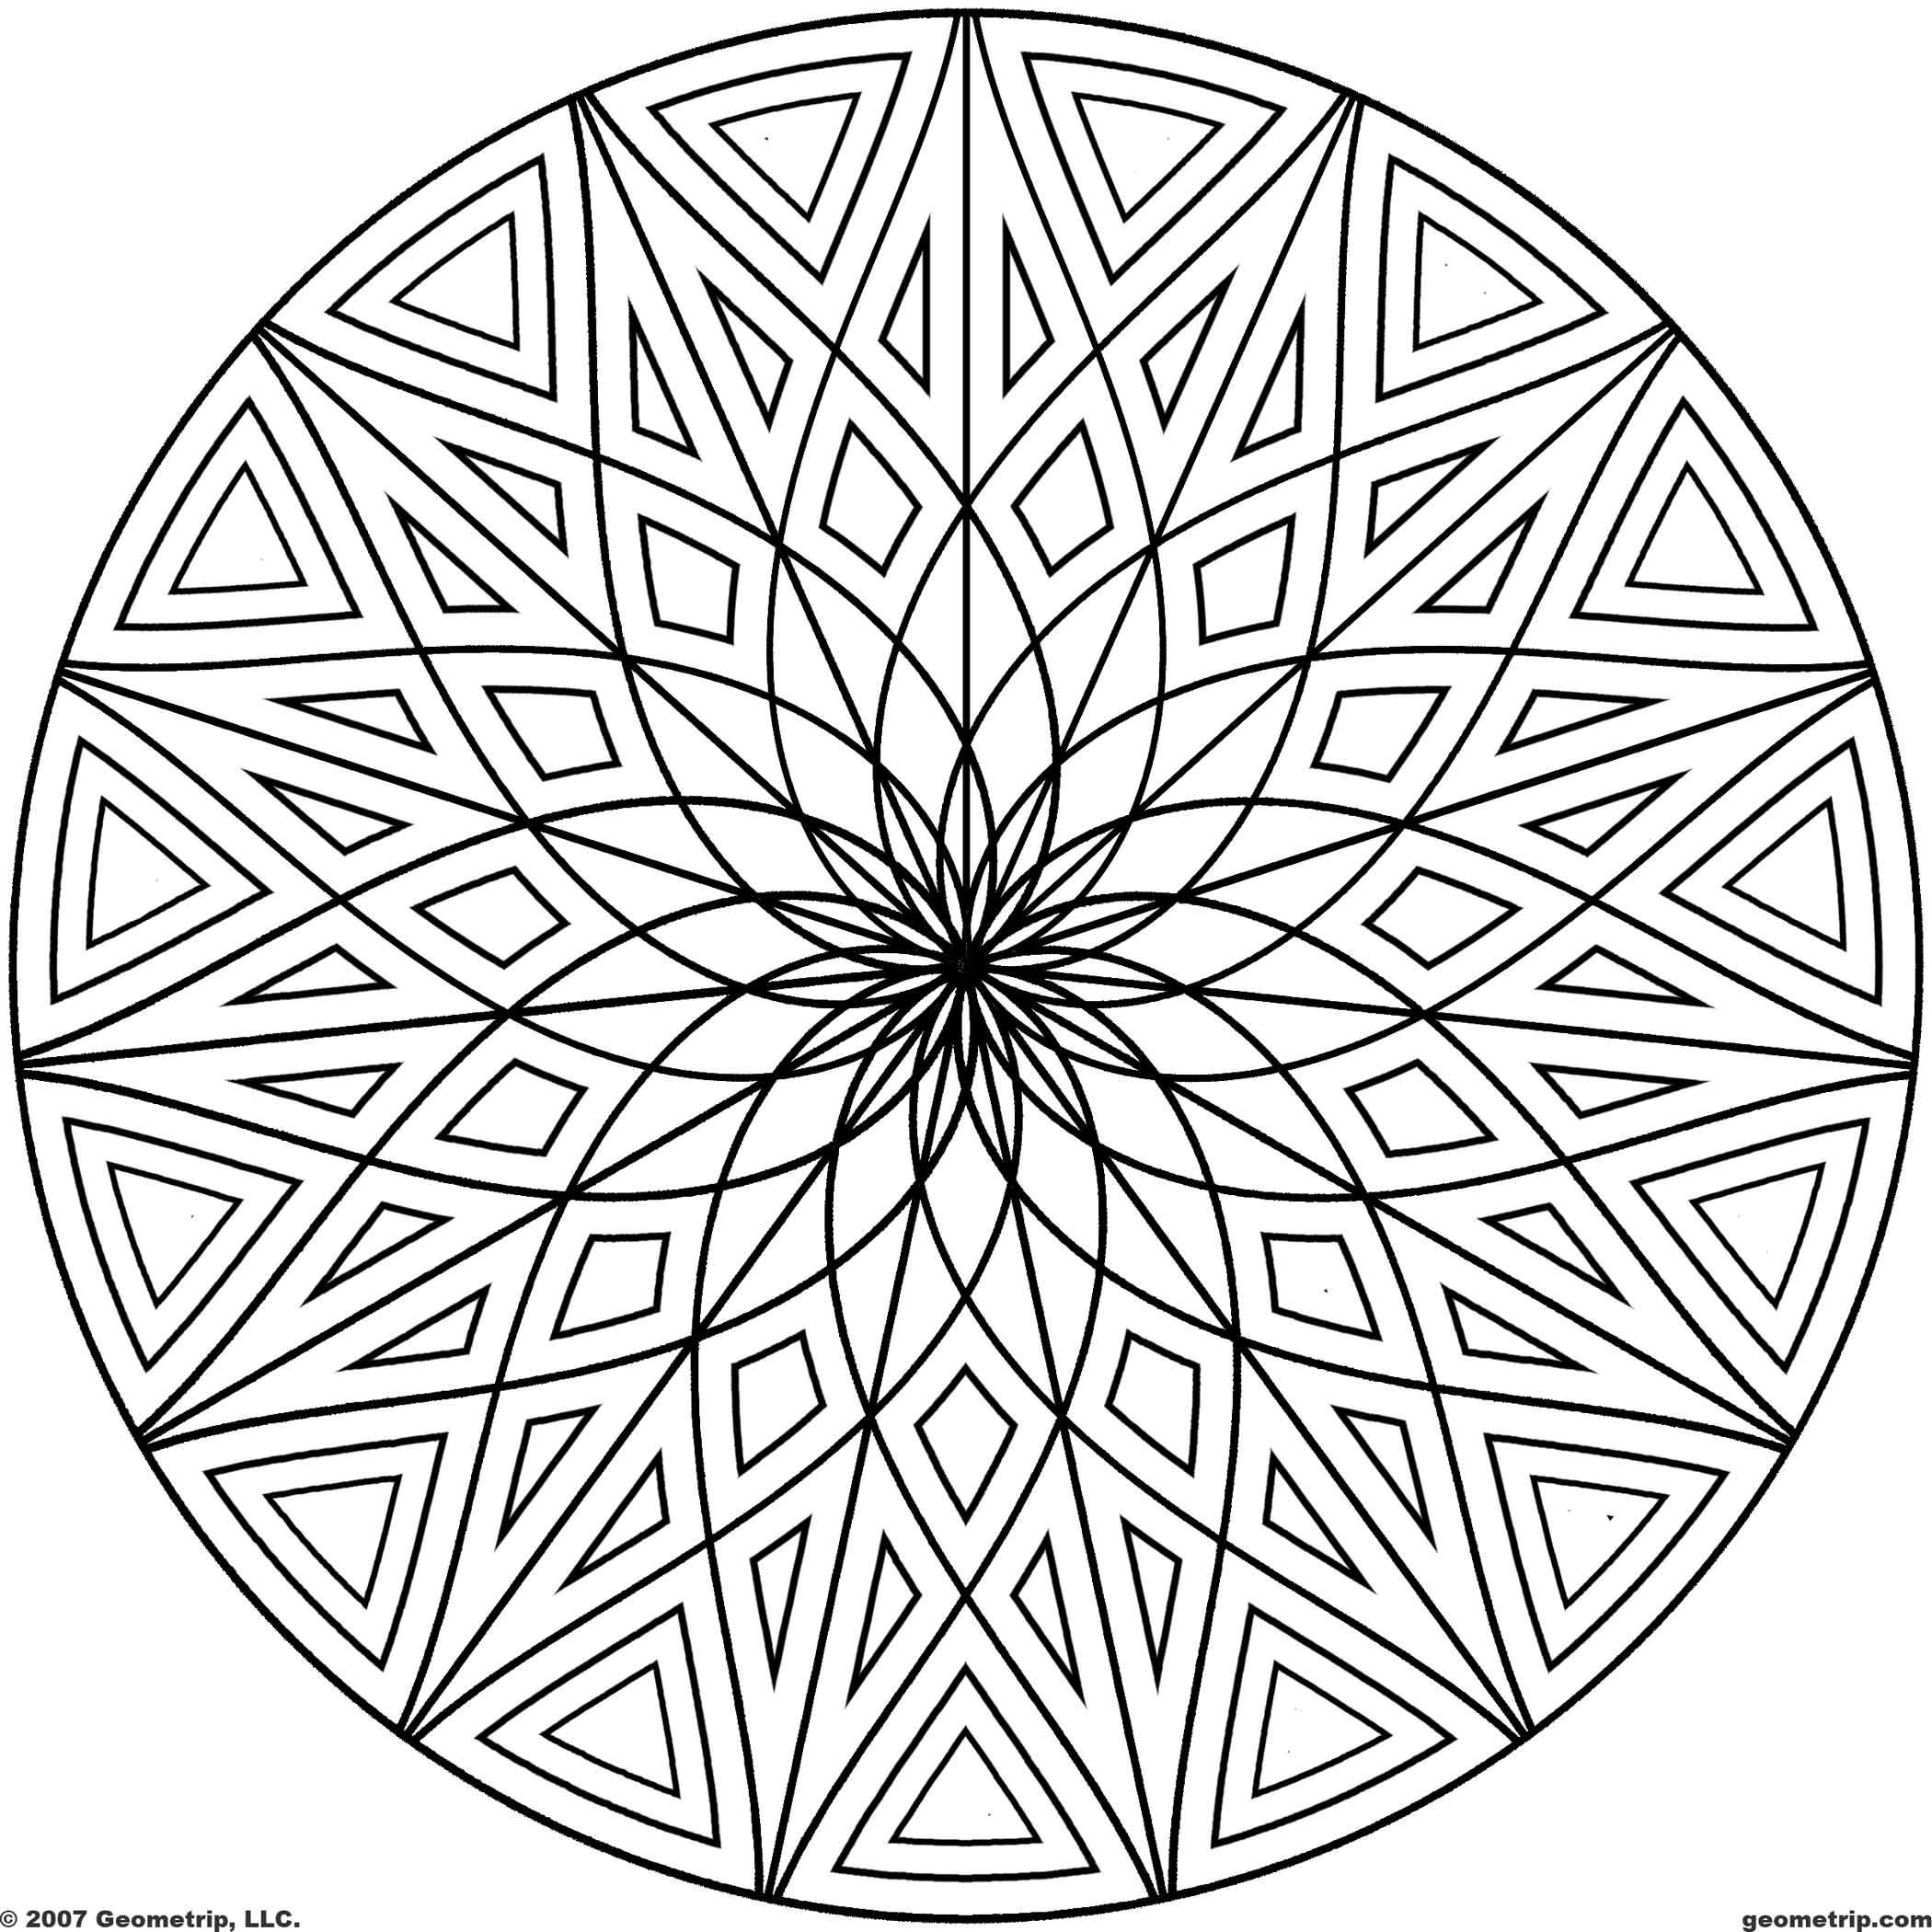 coloring pages of cool designs download pdf jpg - Cool Printable Coloring Pages